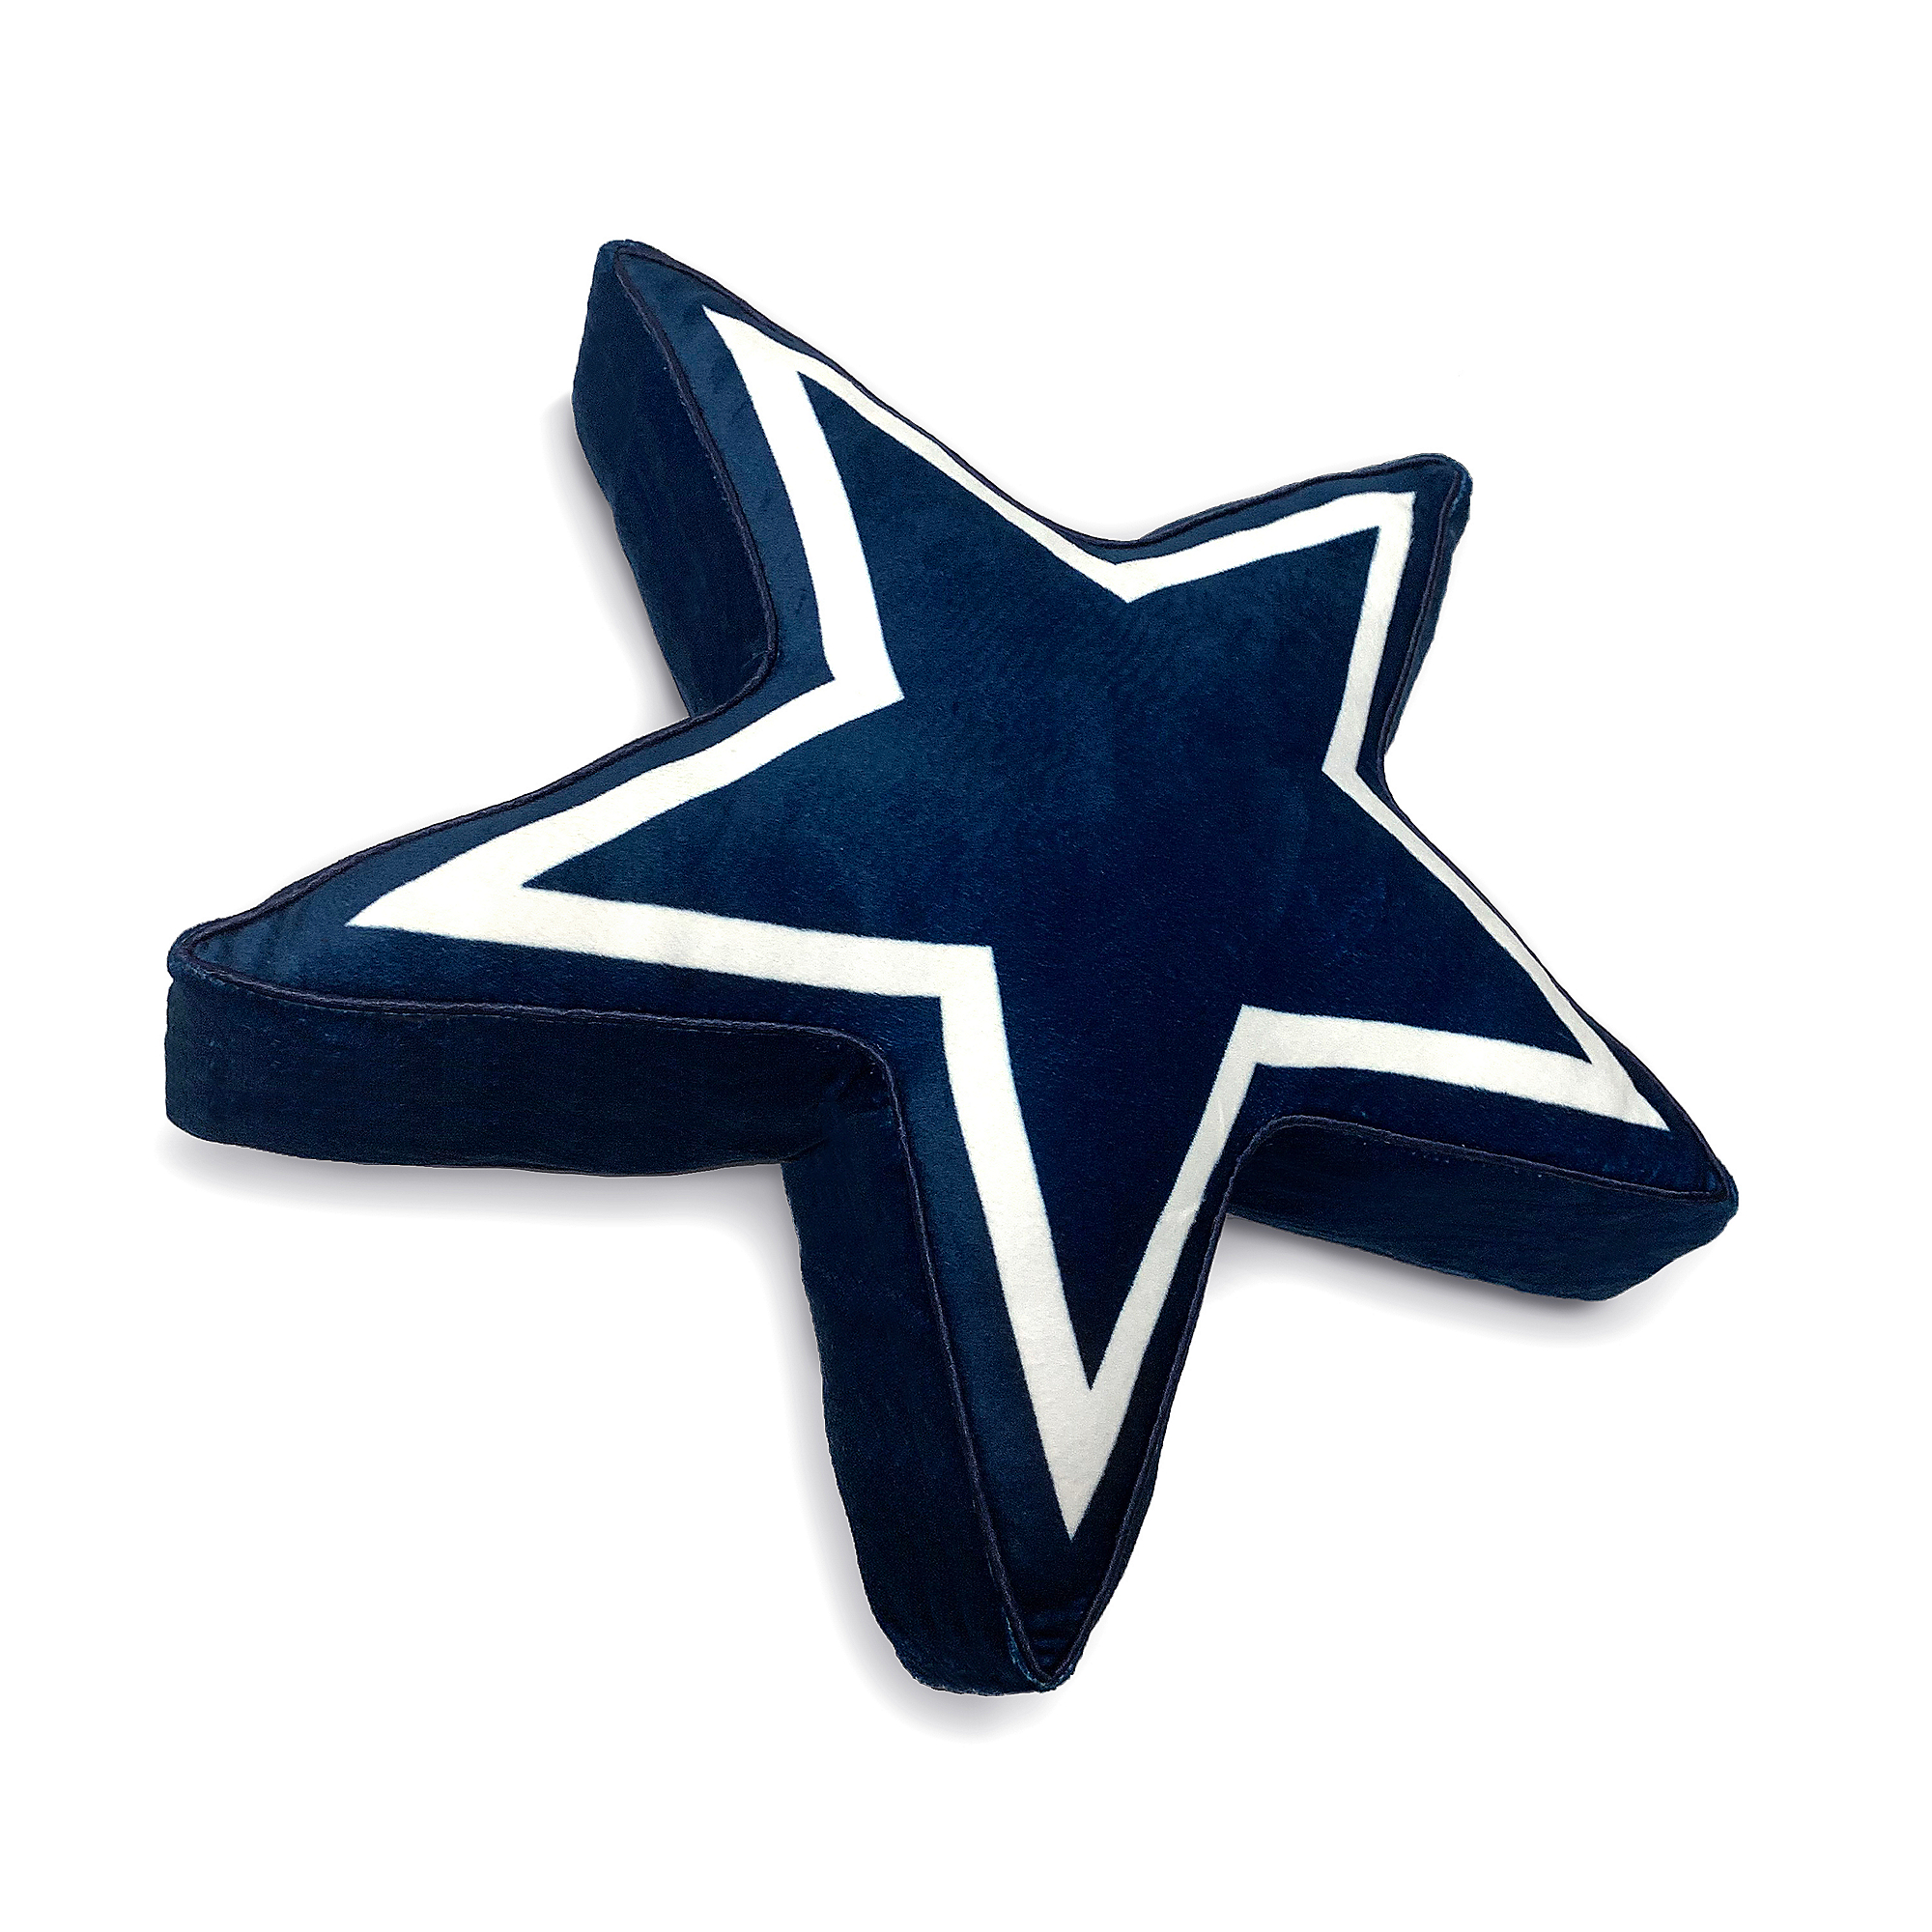 Dallas Cowboys Star Plushette 5-Points Neck Pillow